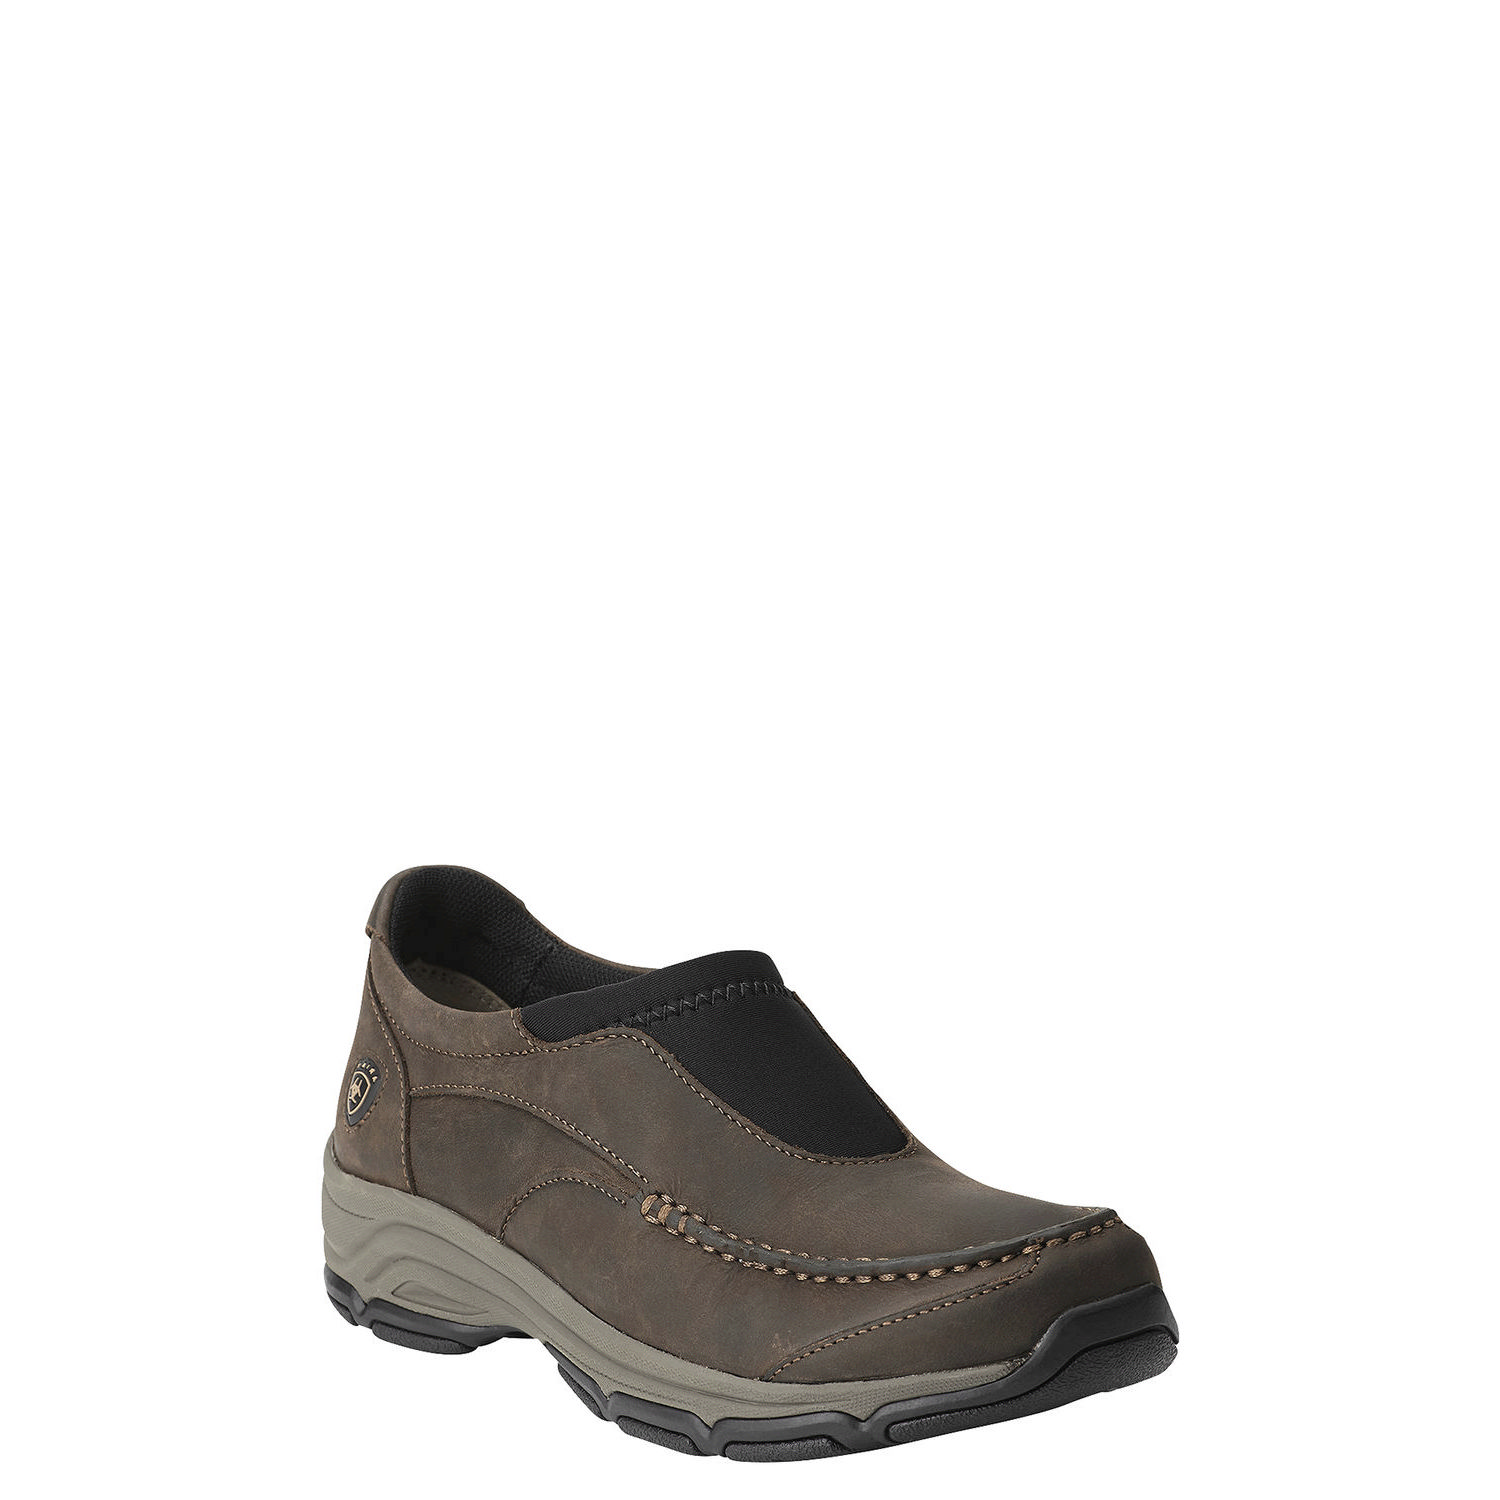 ARIAT Women's Gresham Shoe